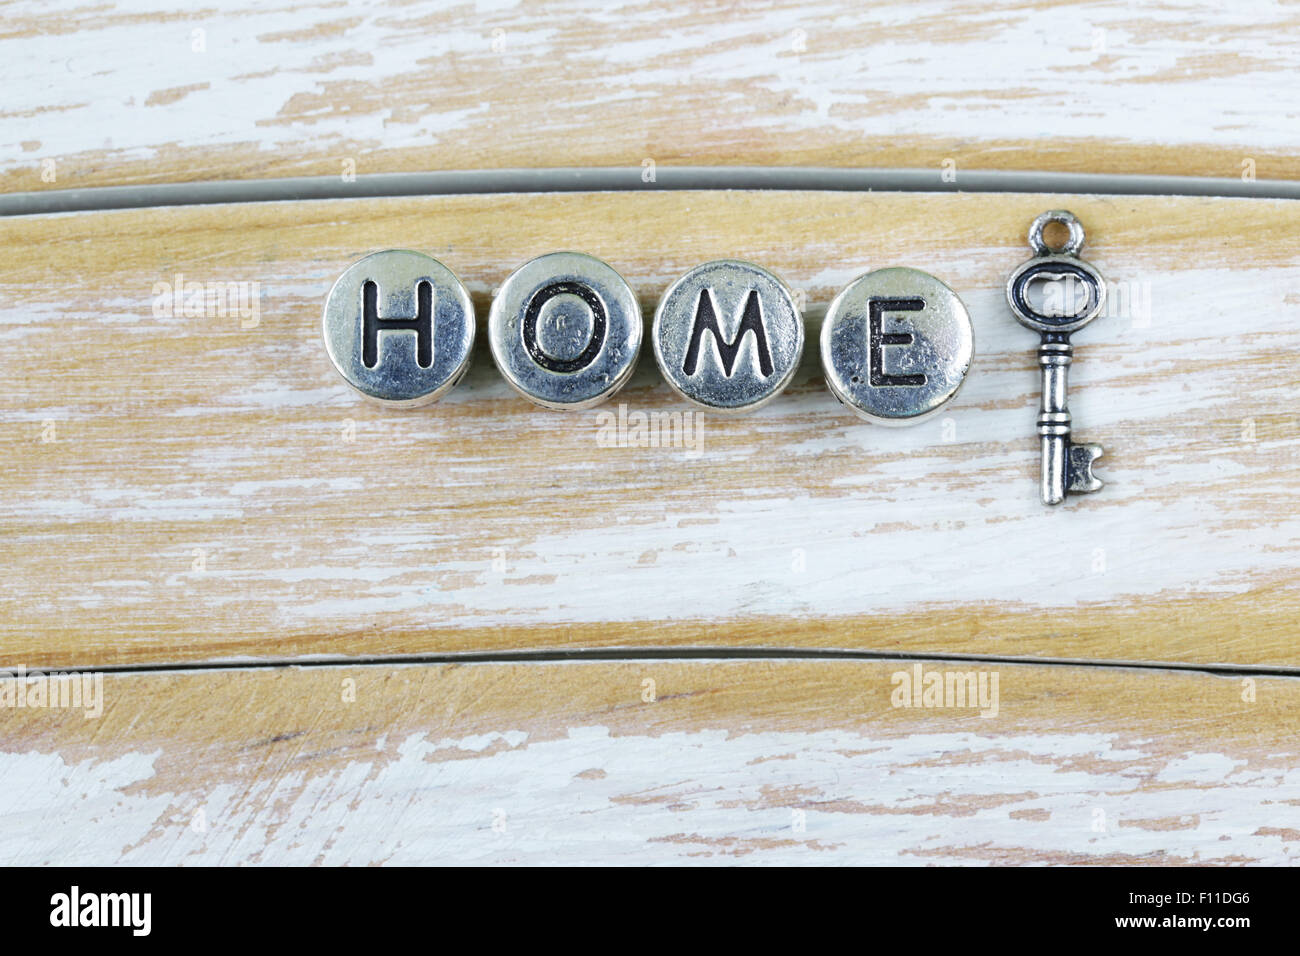 the word 'HOME' written in metal letters - Stock Image